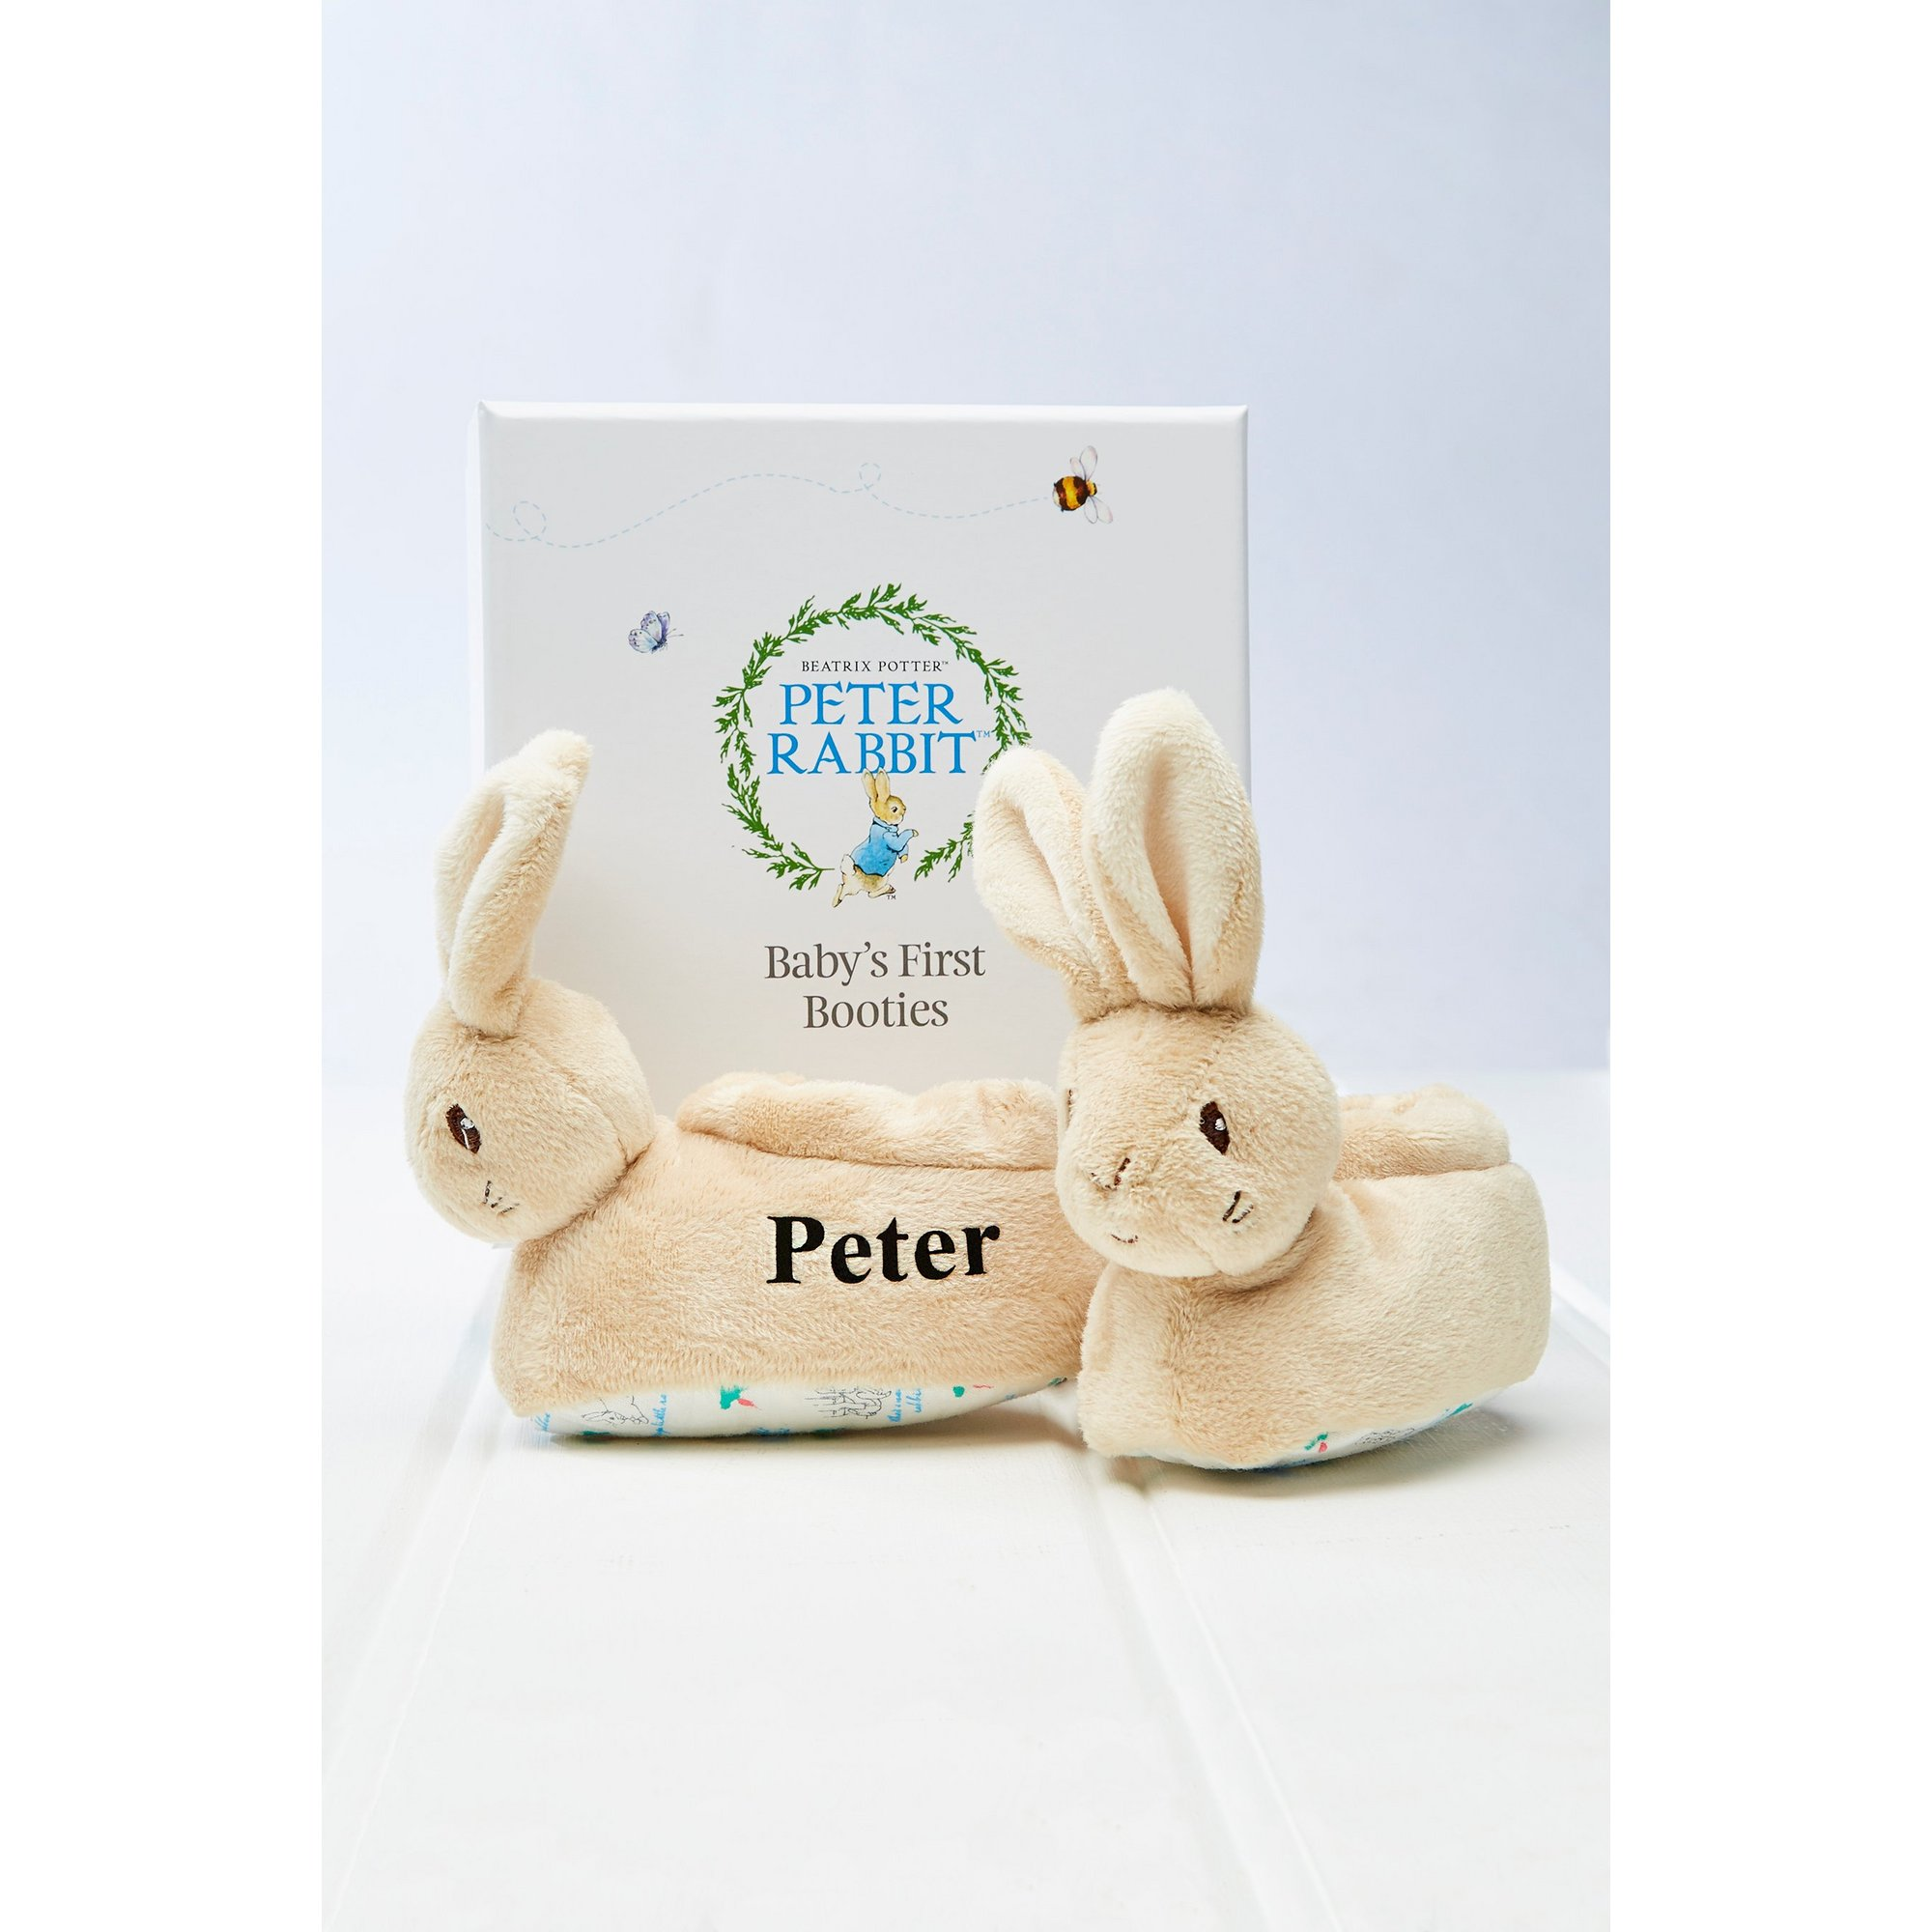 Image of Personalised Peter Rabbit Babys First Booties